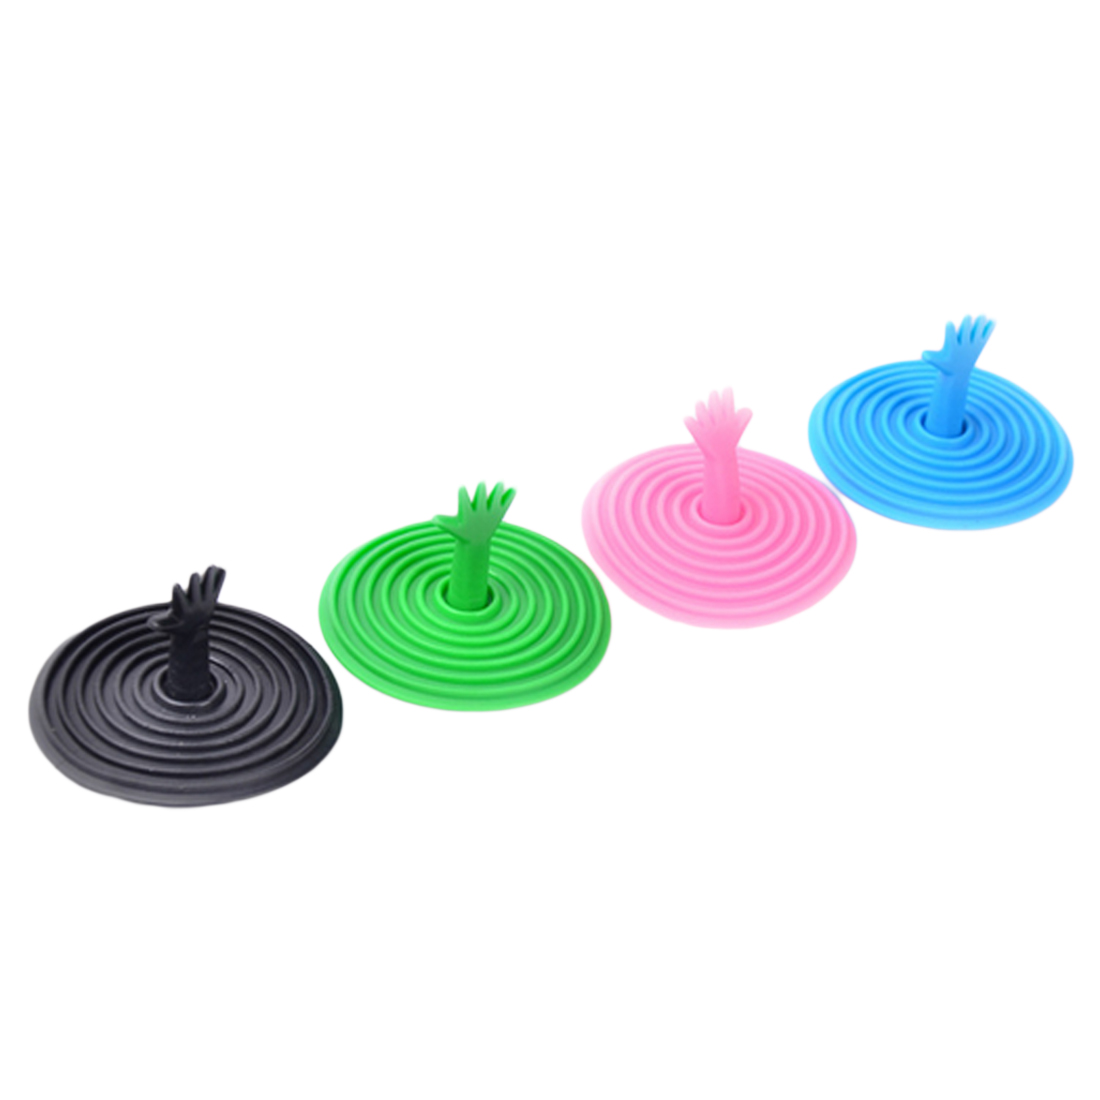 Hot!Sink Plug Creative Sink Hair Plug Water Plug Set Bathroom Accessories Kitchen Basin  ...